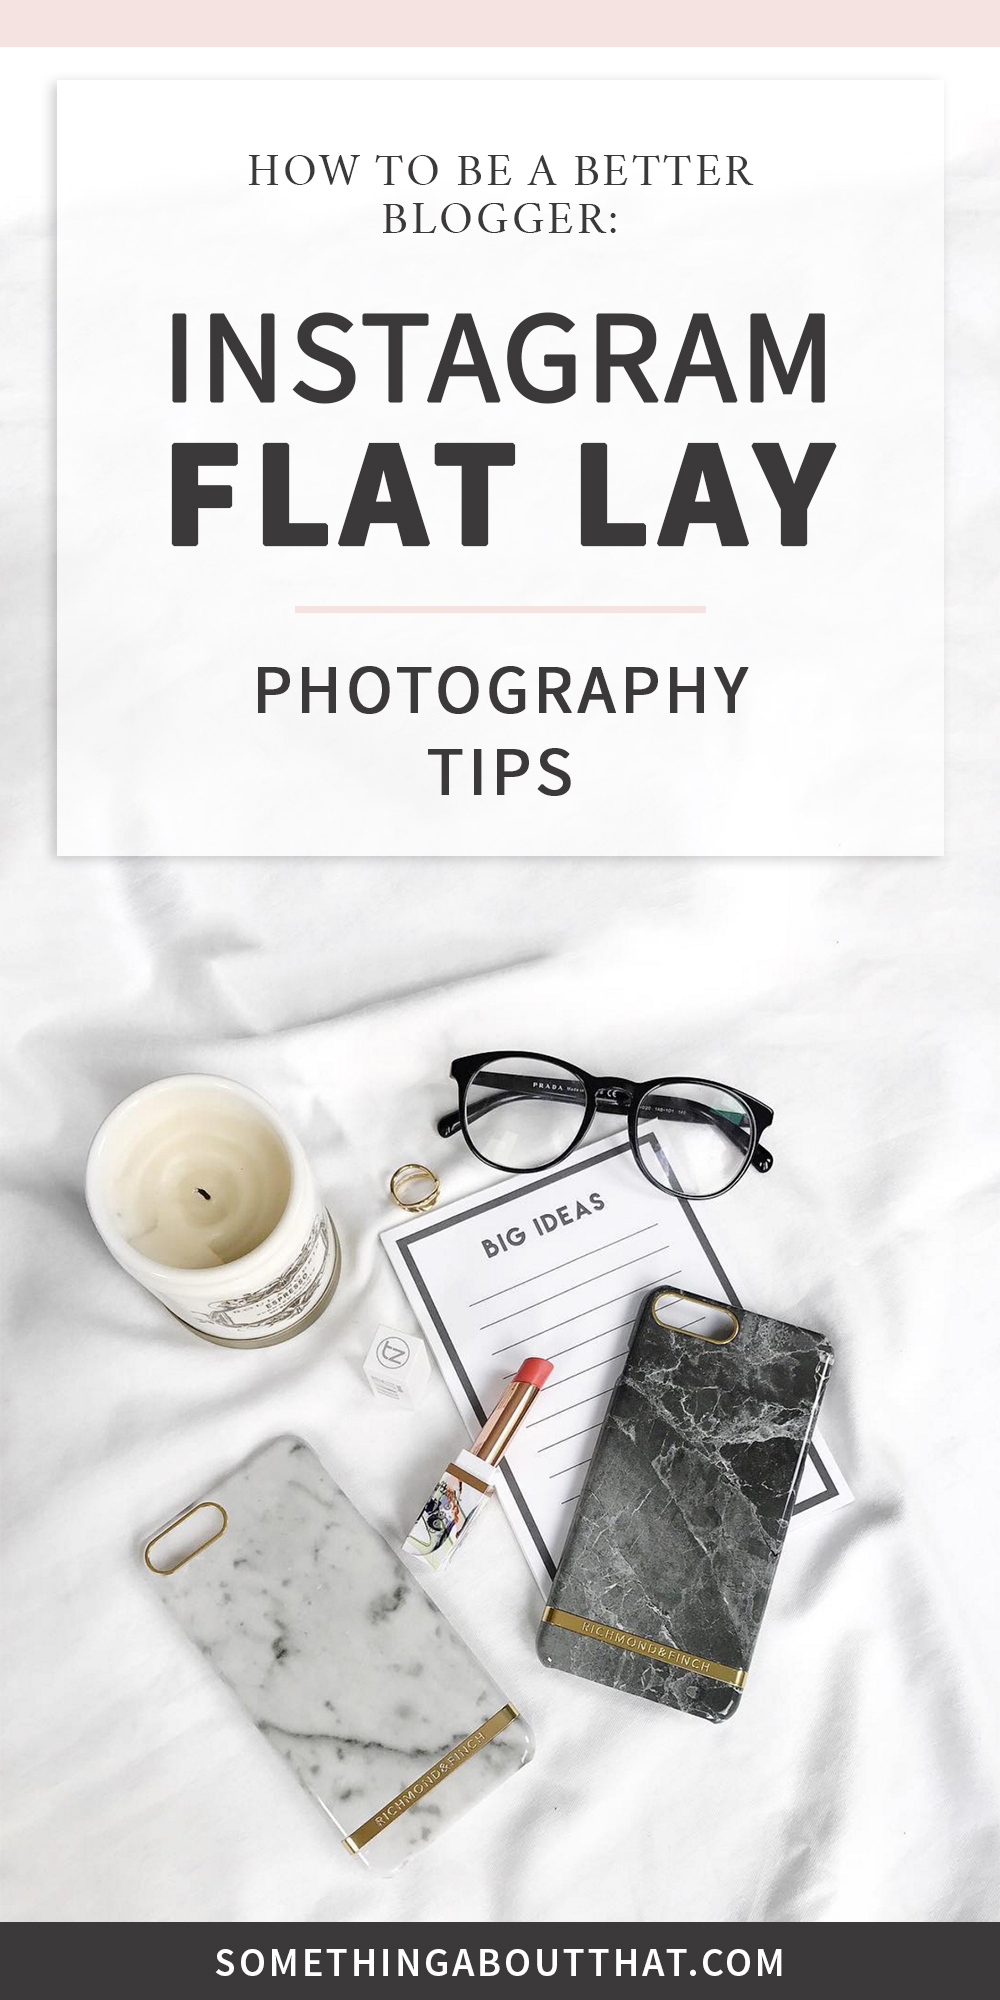 10 Instagram flat lay photography tips to help you grow your following and be a better blogger